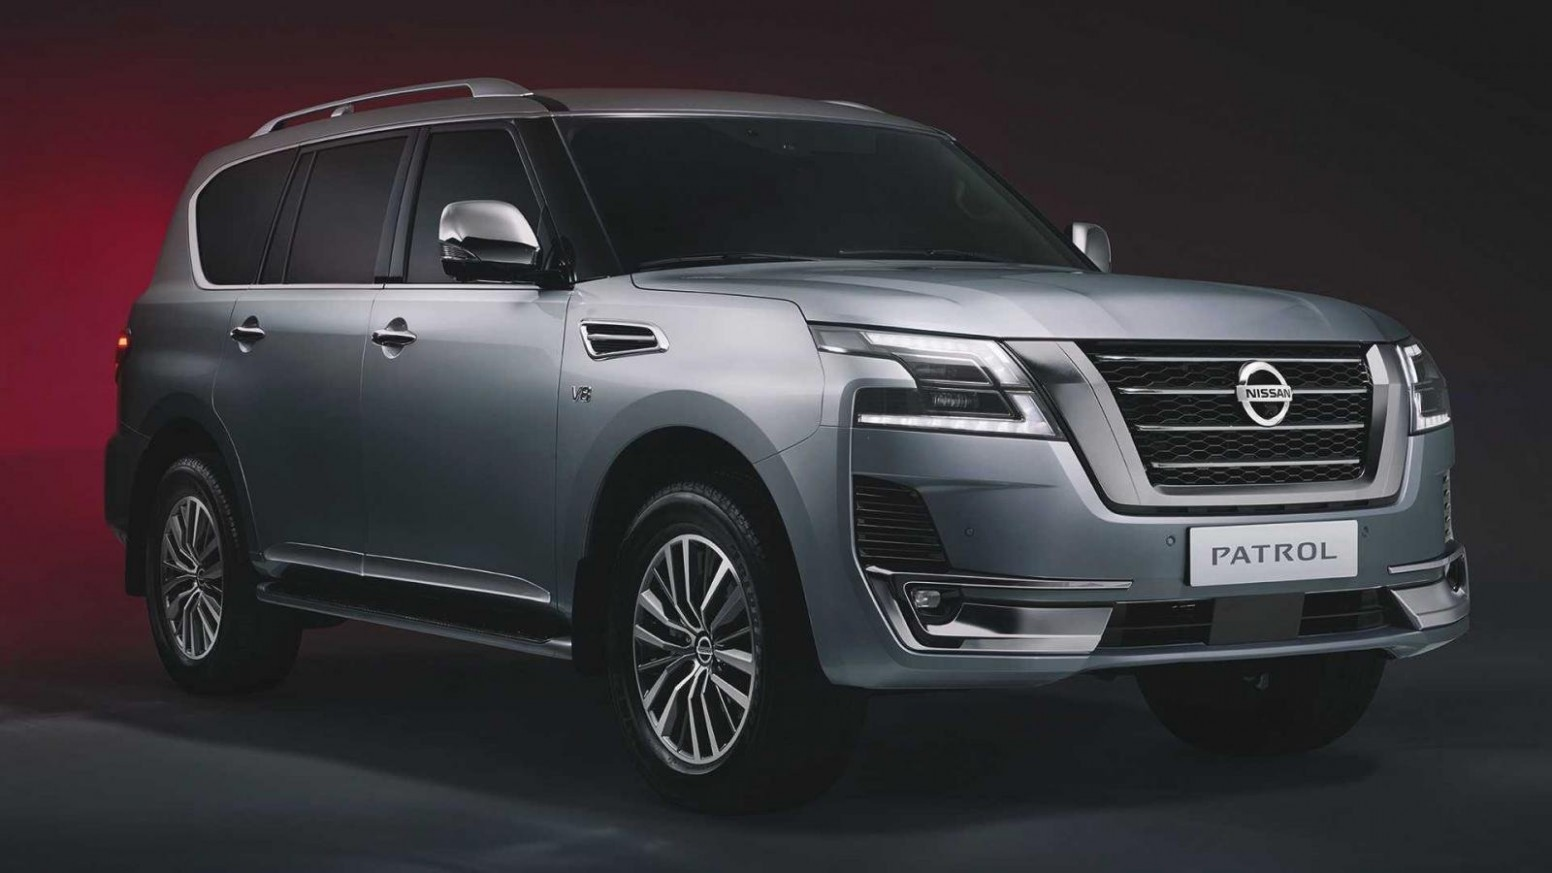 4 Nissan Patrol: Expectations and what we know so far